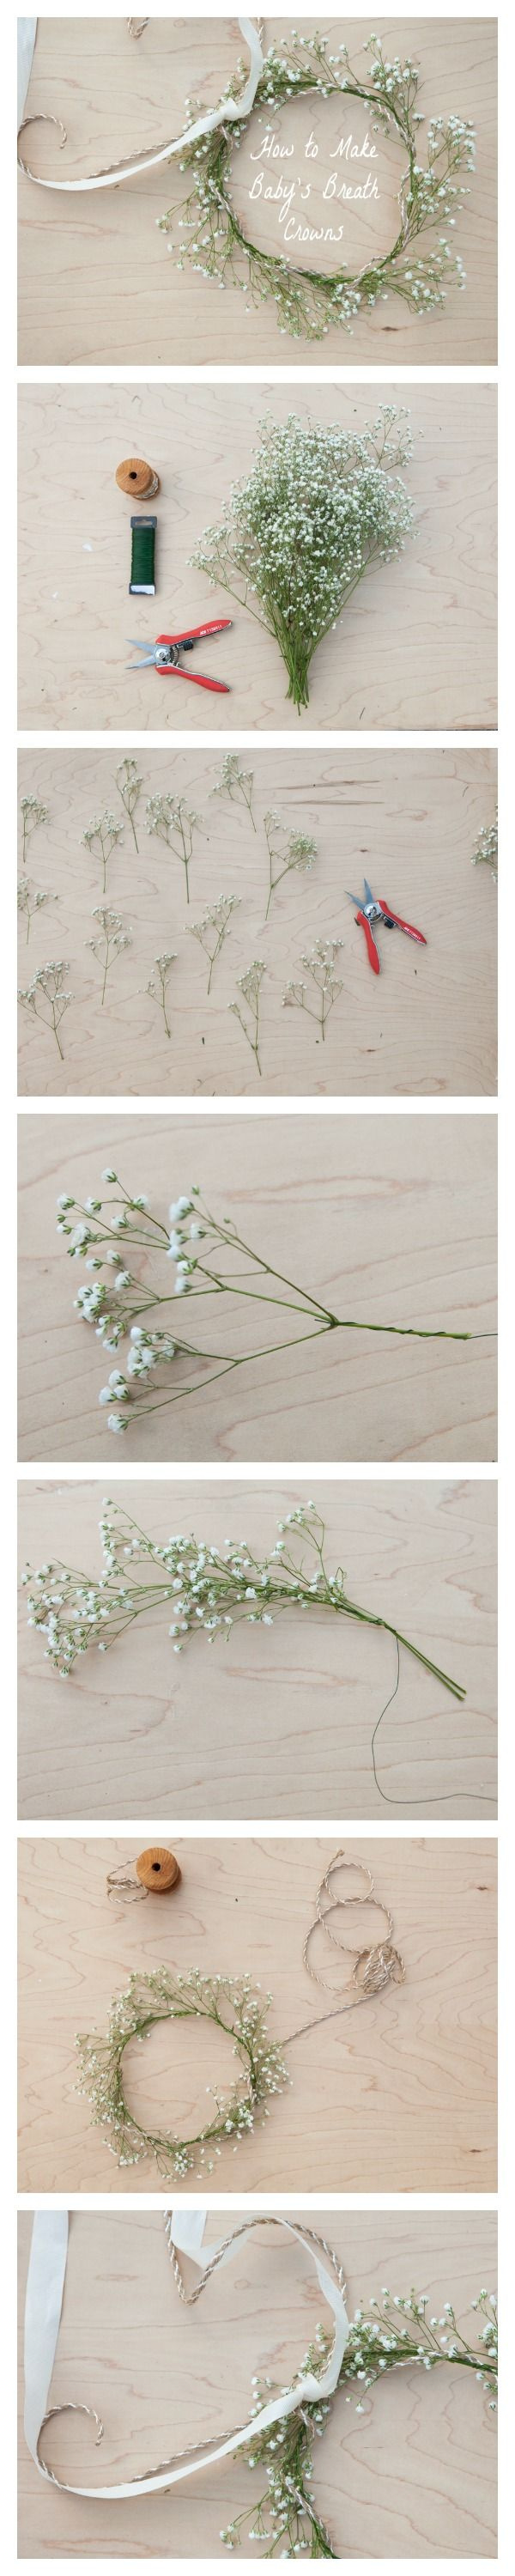 How to Make a Baby's Breath Crown